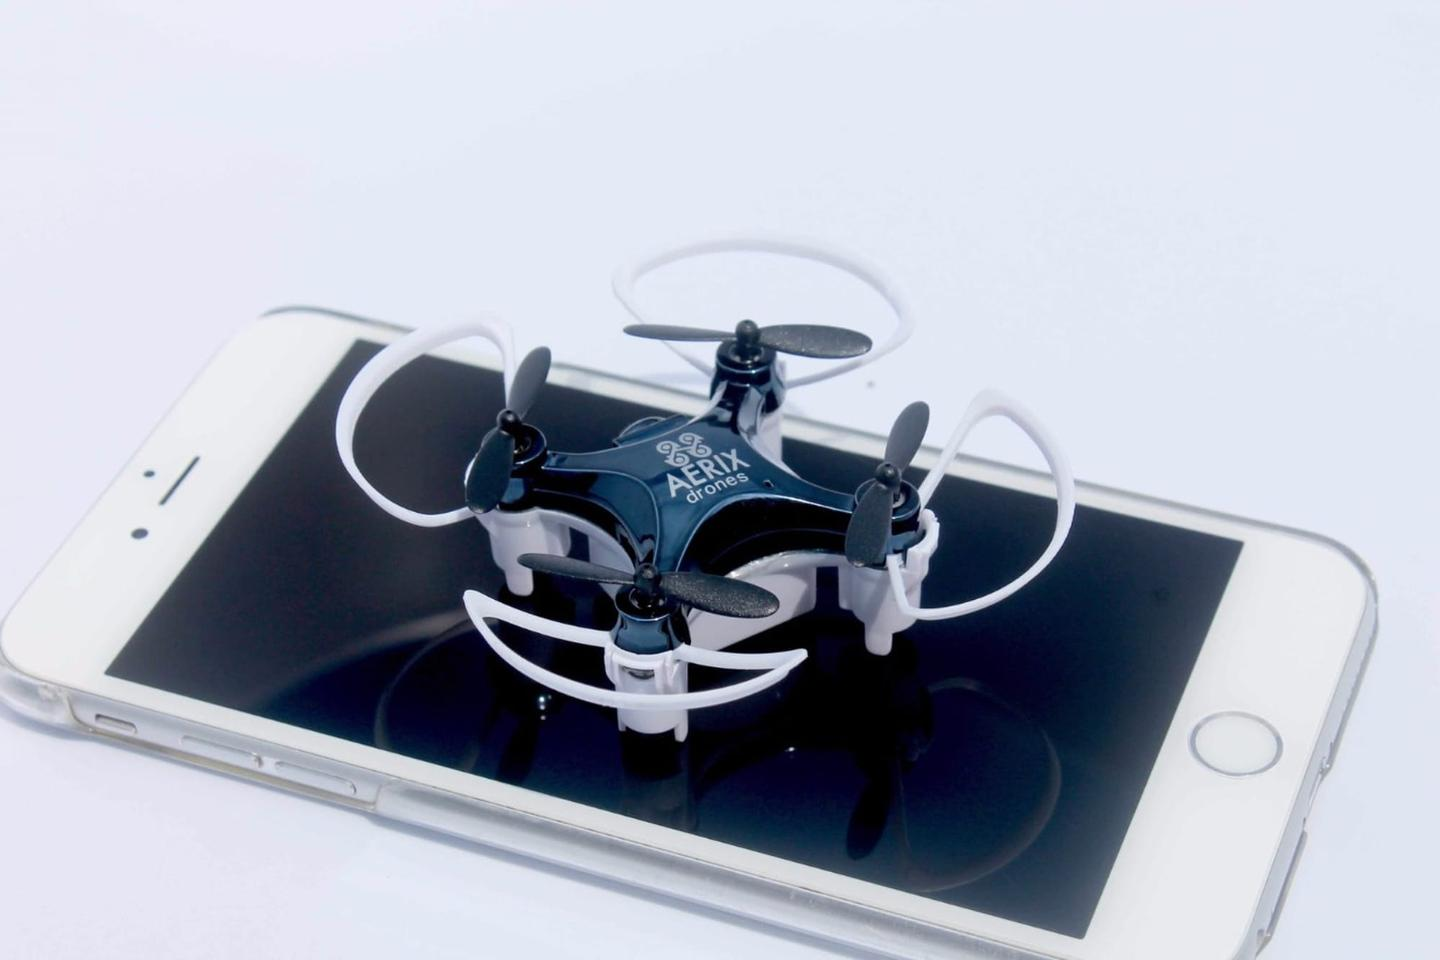 The Vidius VR drone pairs with a tablet or smartphone from 100 ft (30 m) away